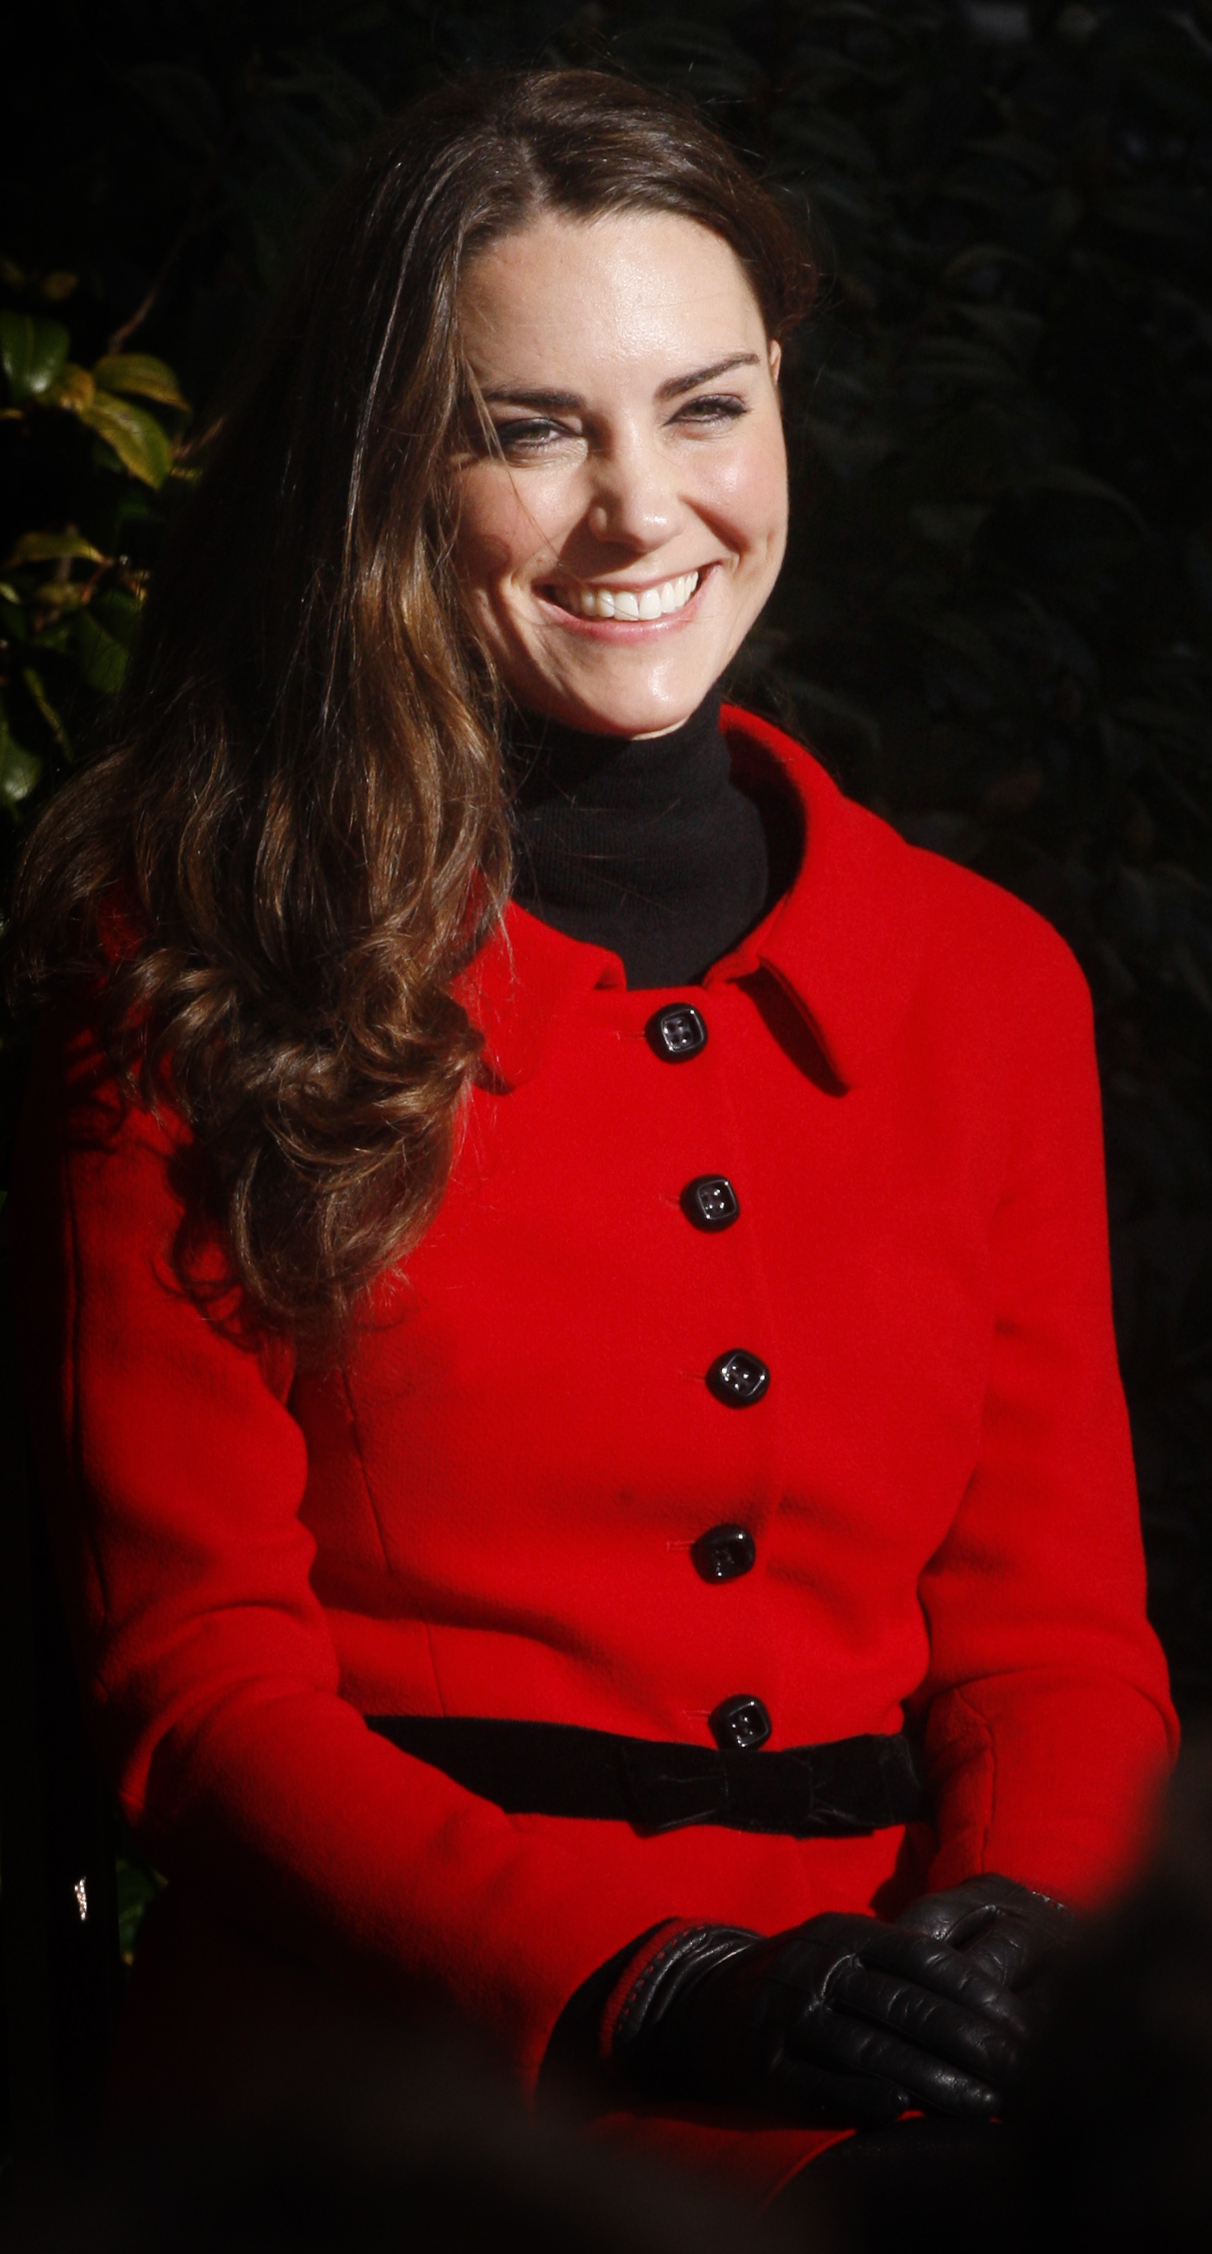 Prince William's fiancee Kate Middleton smiles during a visit to the University of St Andrews in Scotland on February 25, 2011. During the visit they viewed the surviving Papal Bull (the university's founding document), unveiled a plaque, and met a selection of the University's current staff and students to mark the start of the Anniversary. Prince William and Kate Middleton attended the university as students from 2001 to 2005 and began their romance in St Andrews.2011. AFP PHOTO/WPA POOL/DANNY LAWSON (Photo credit should read DANNY LAWSON/AFP/Getty Images)